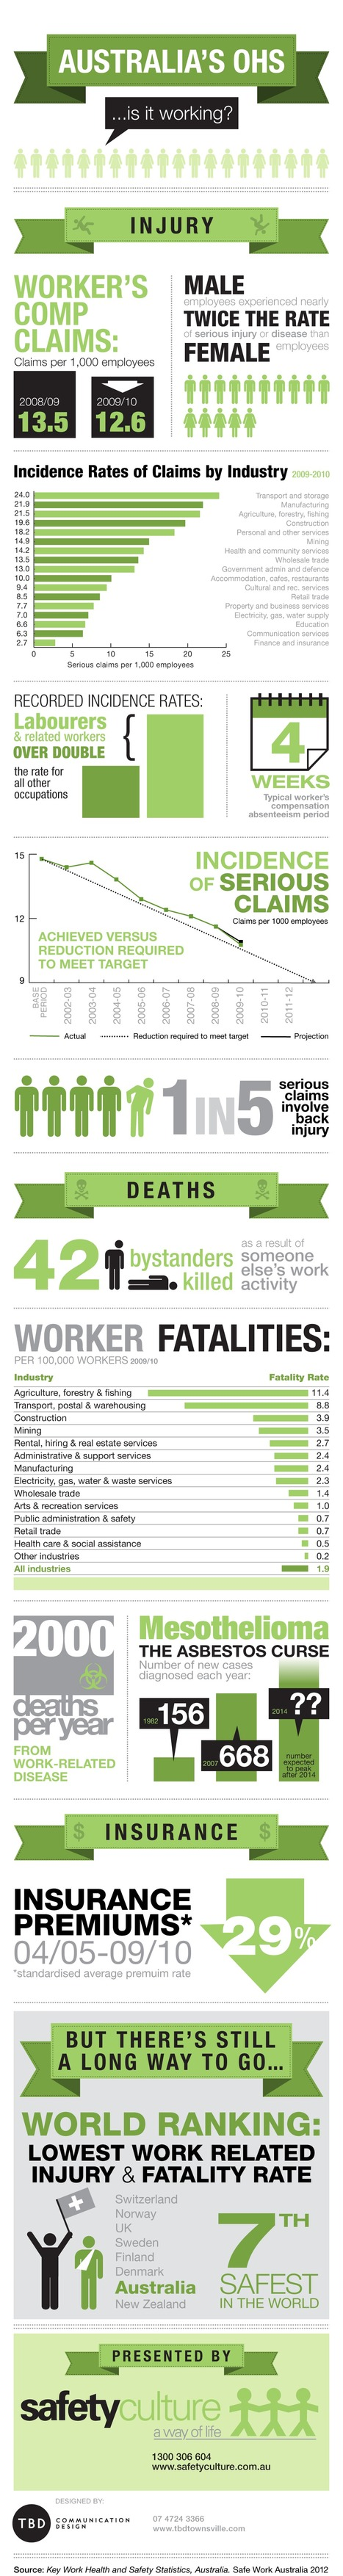 OHS Infographic: Australia's OHS… is it working? | Compliance and Safety Blog | Quest 1 | Scoop.it